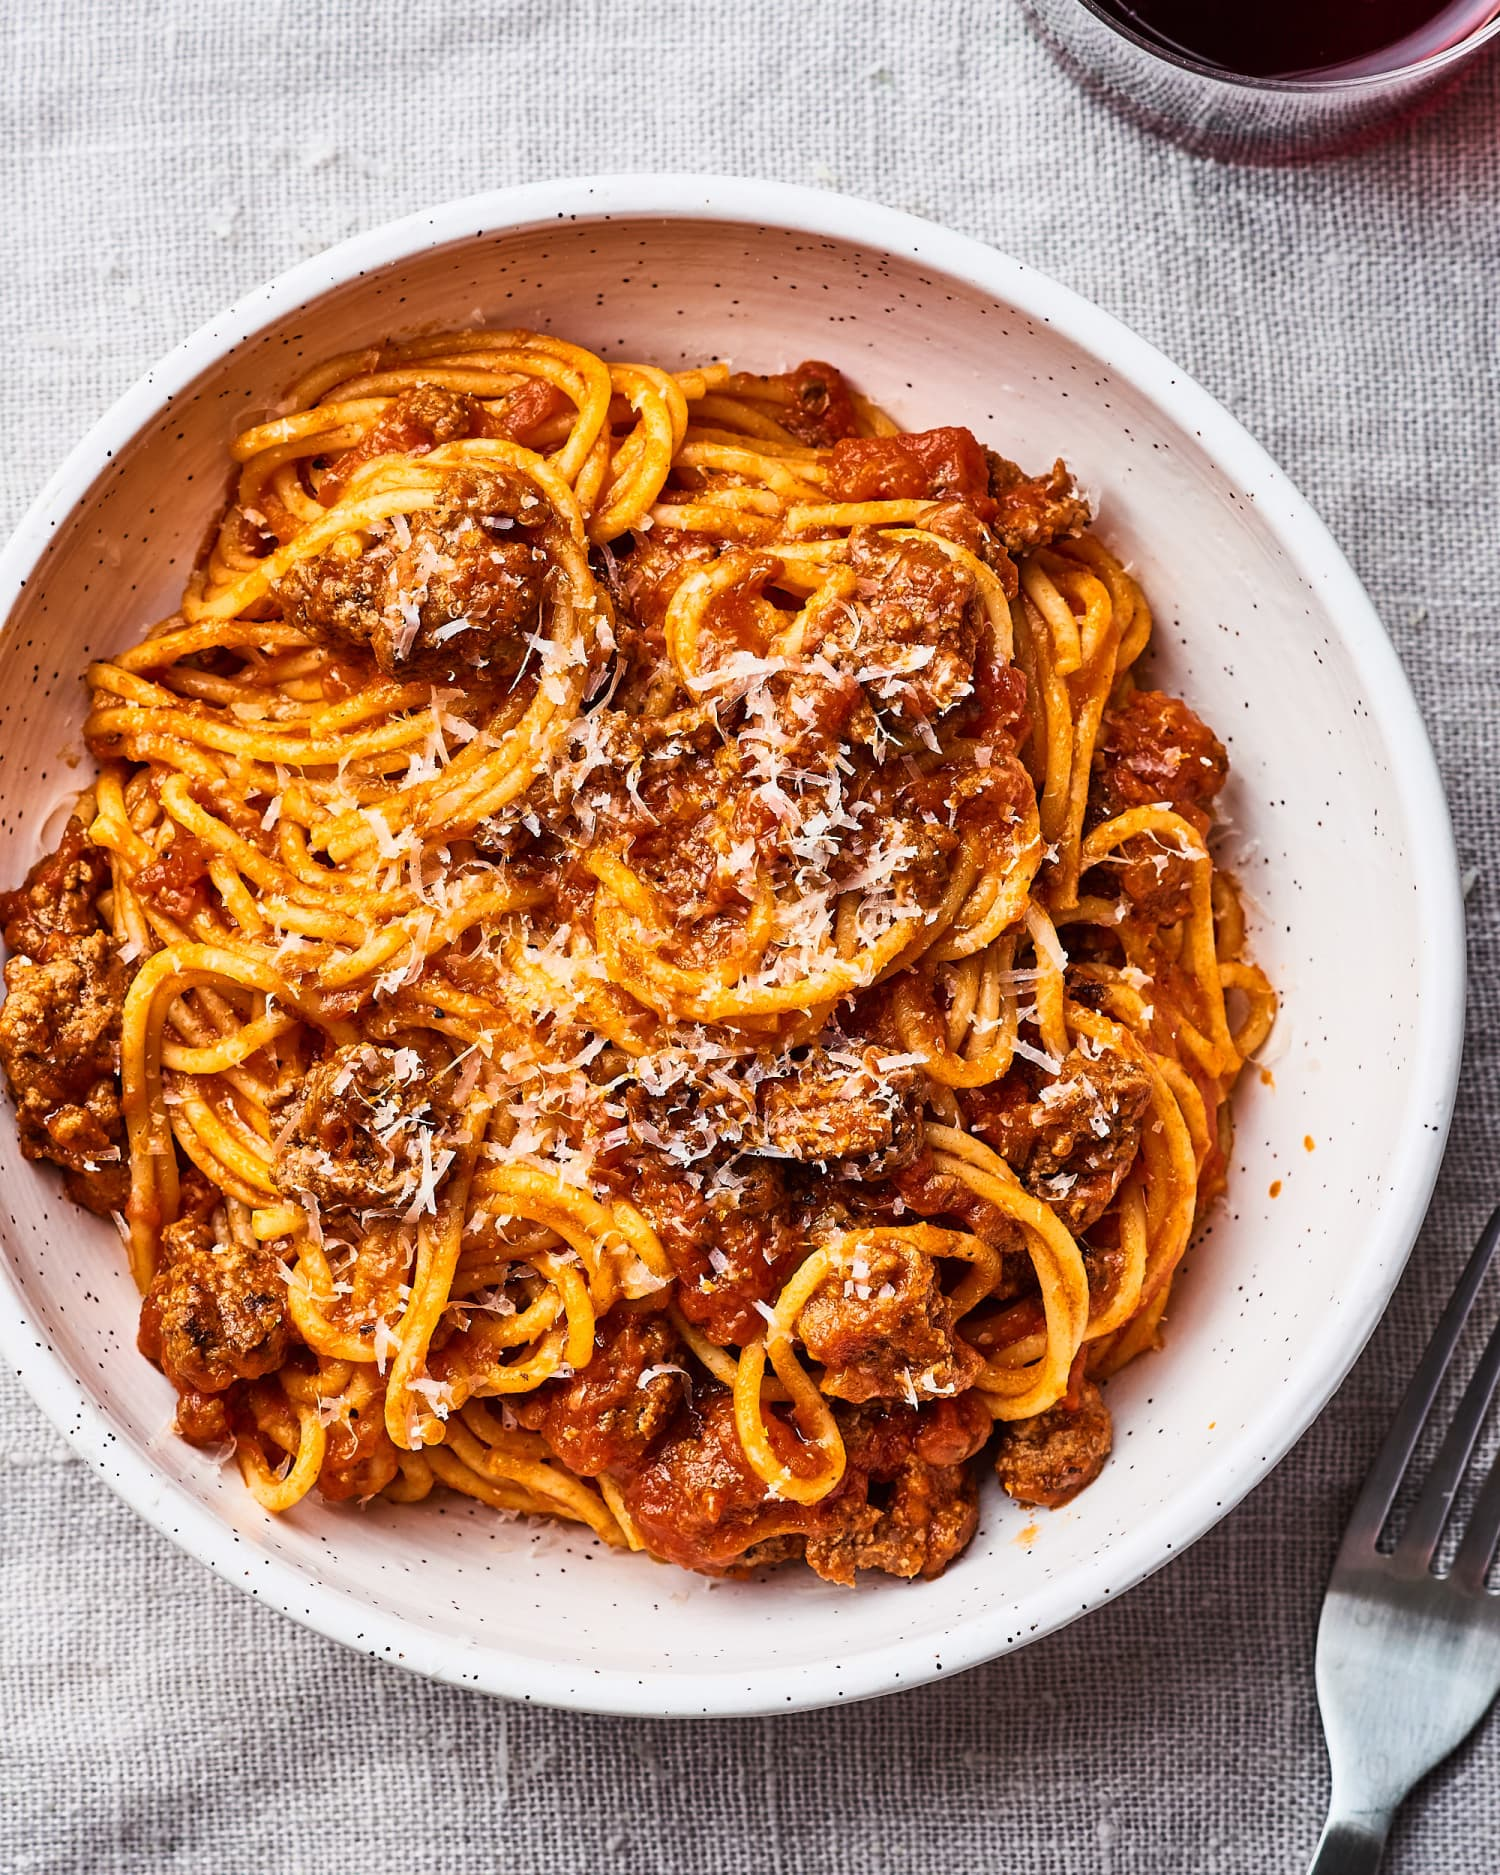 Instant Pot Recipe: Spaghetti With Meat Sauce